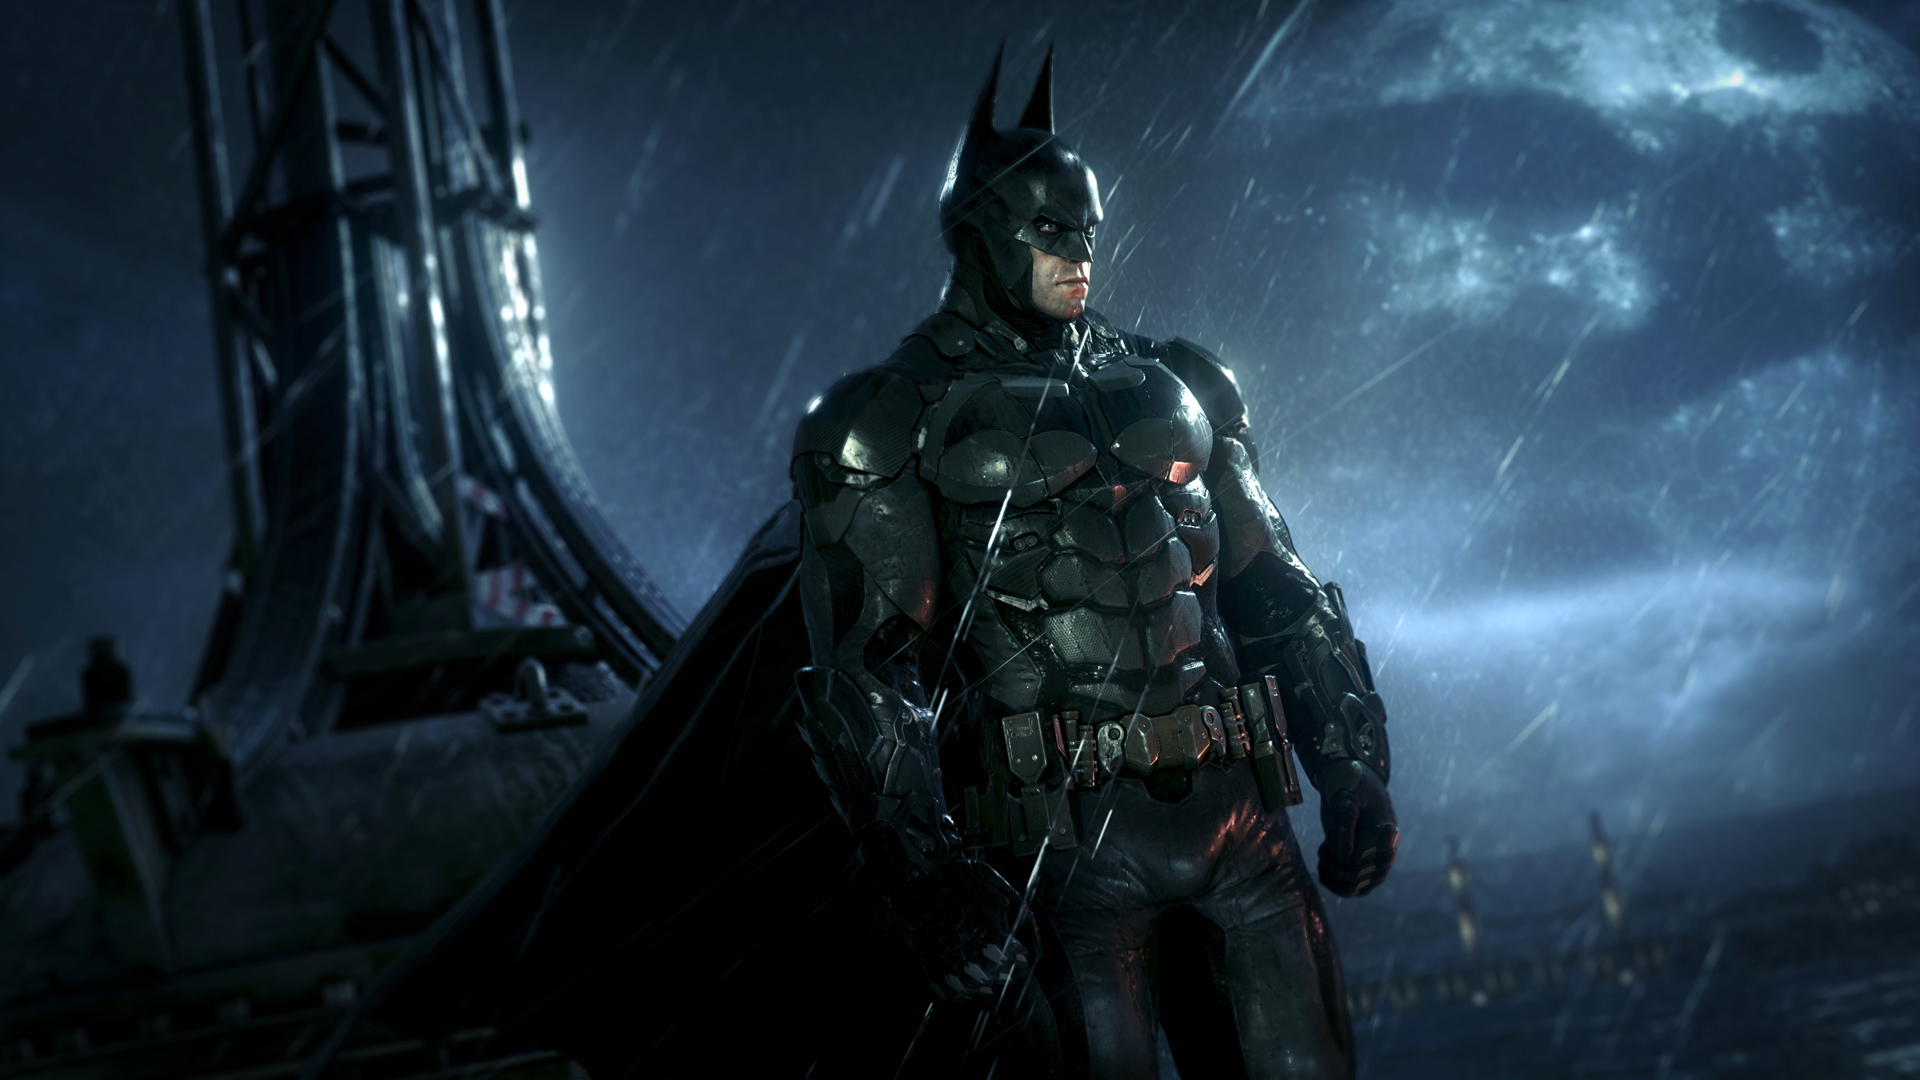 Batman Arkham Knight 2014 Game 2g Wallpaper HD 1920x1080